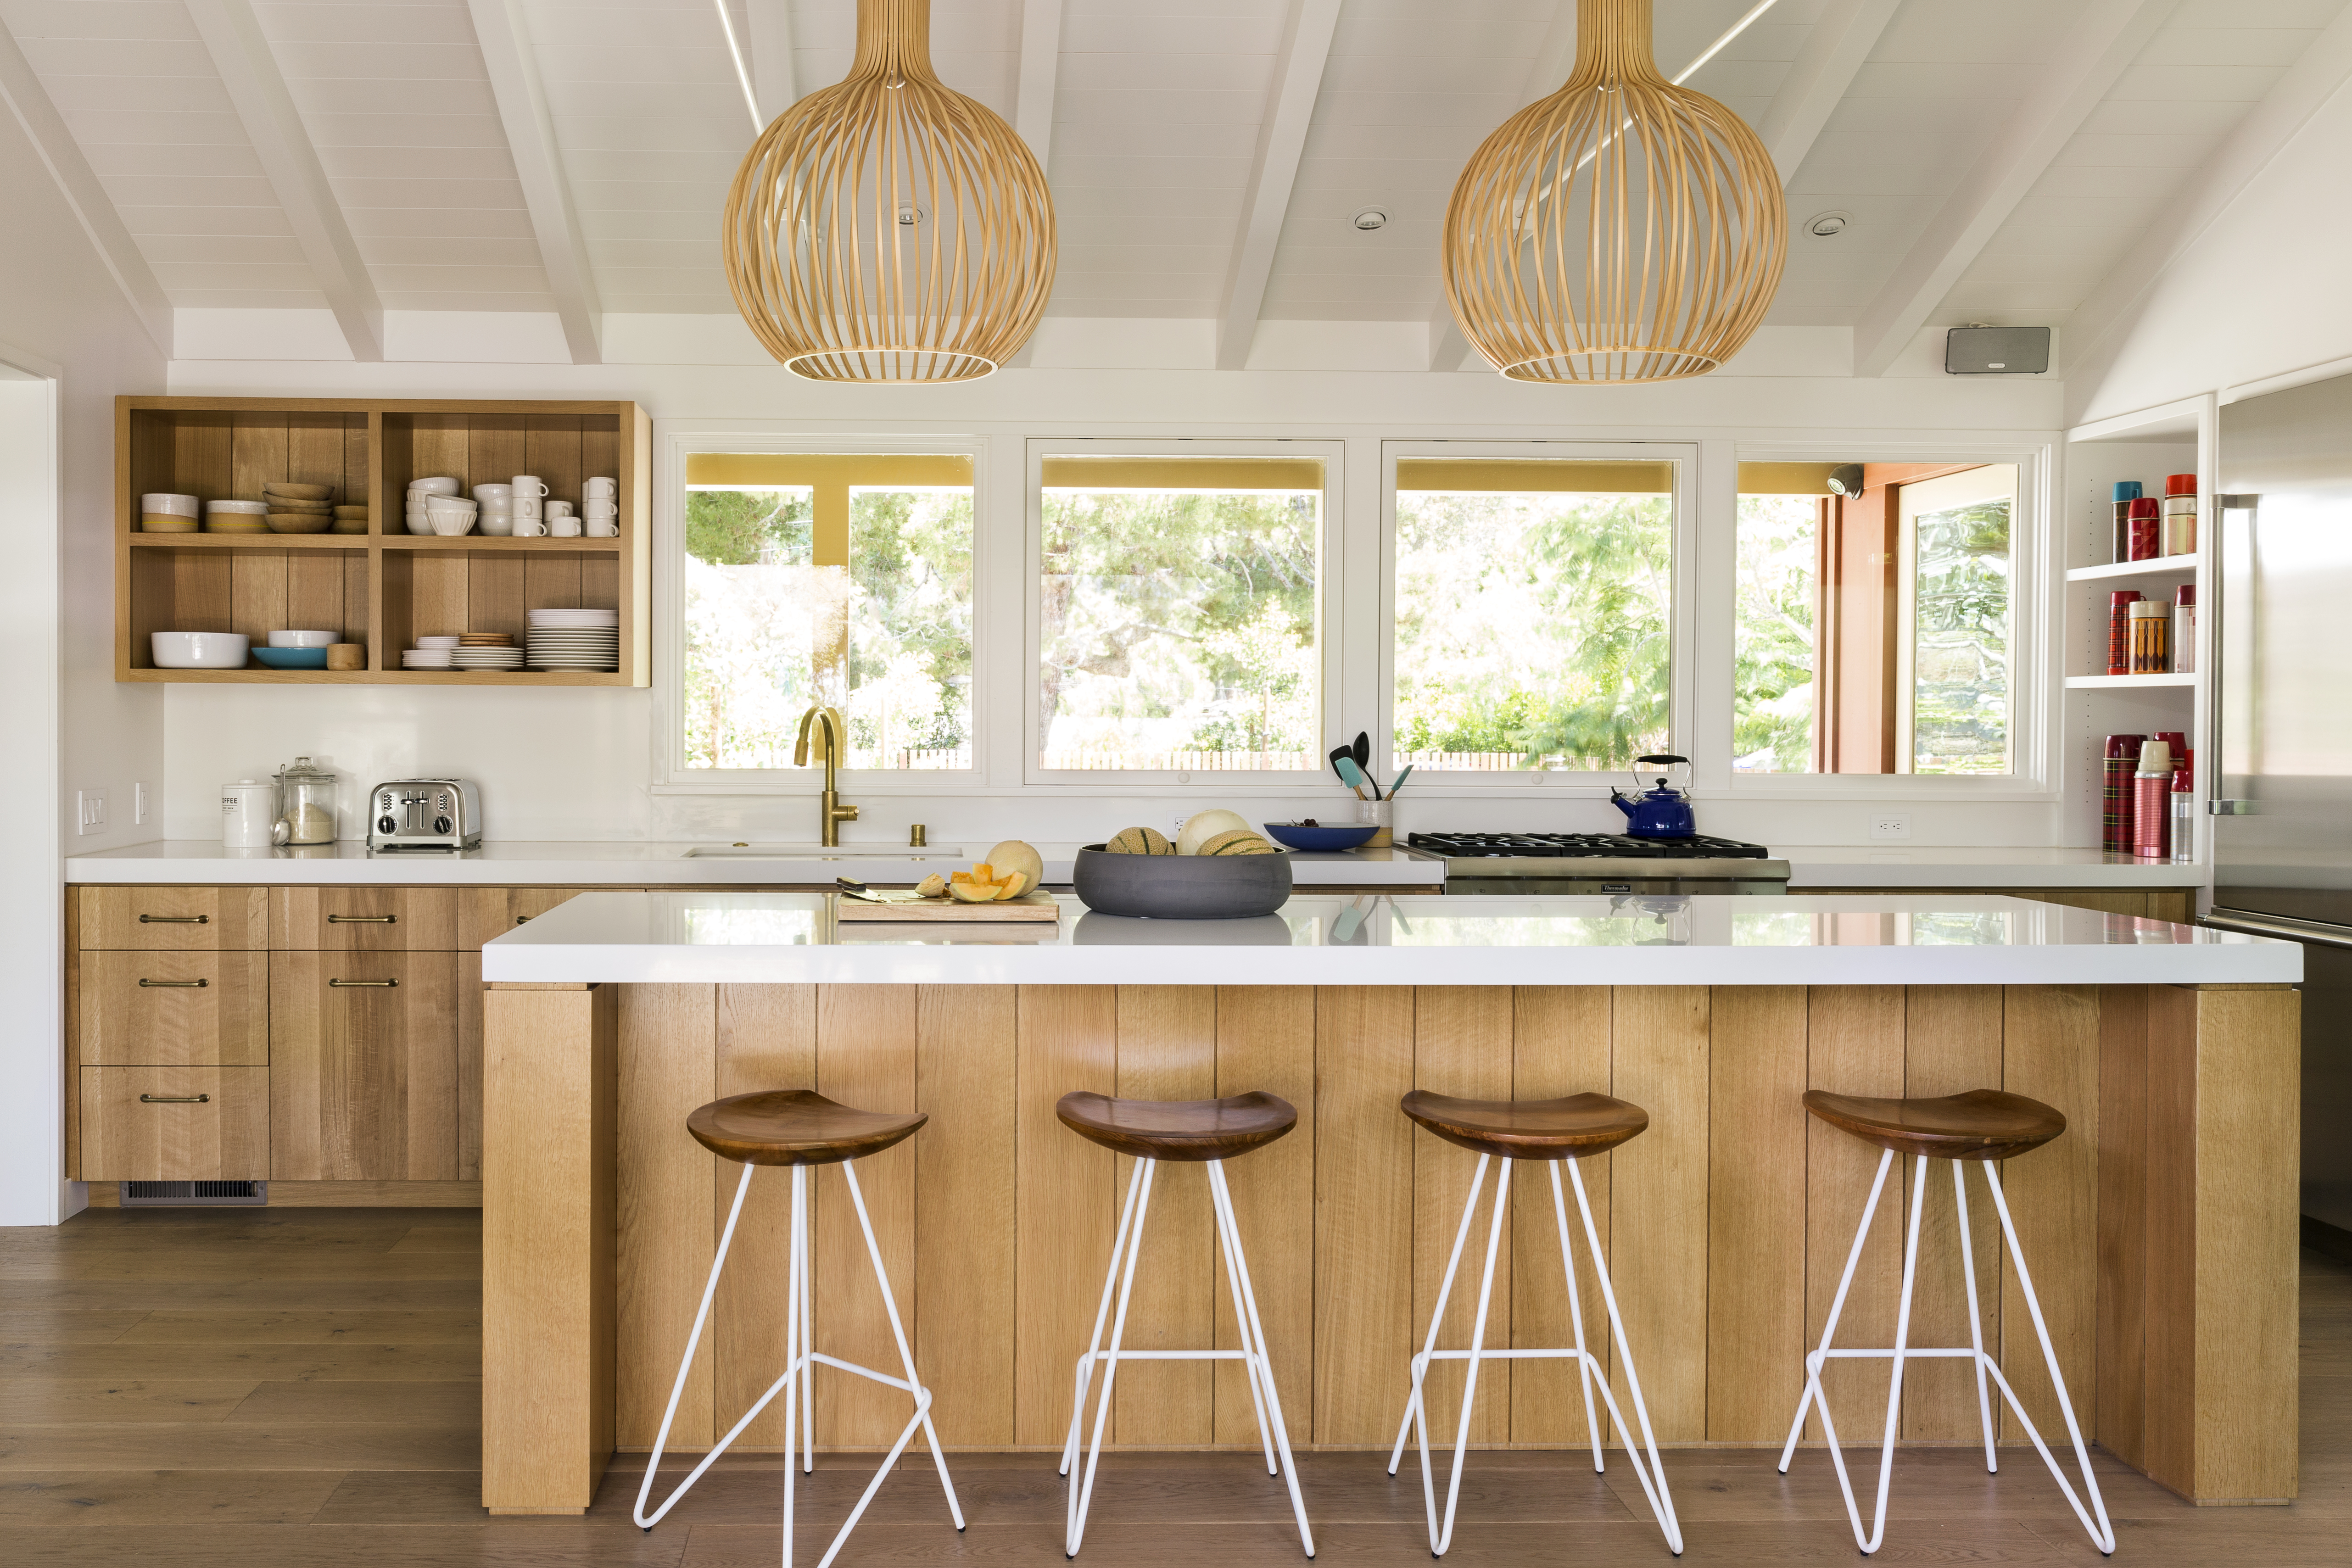 Get the kitchen of your dreams—no renovation required - Sunset Magazine